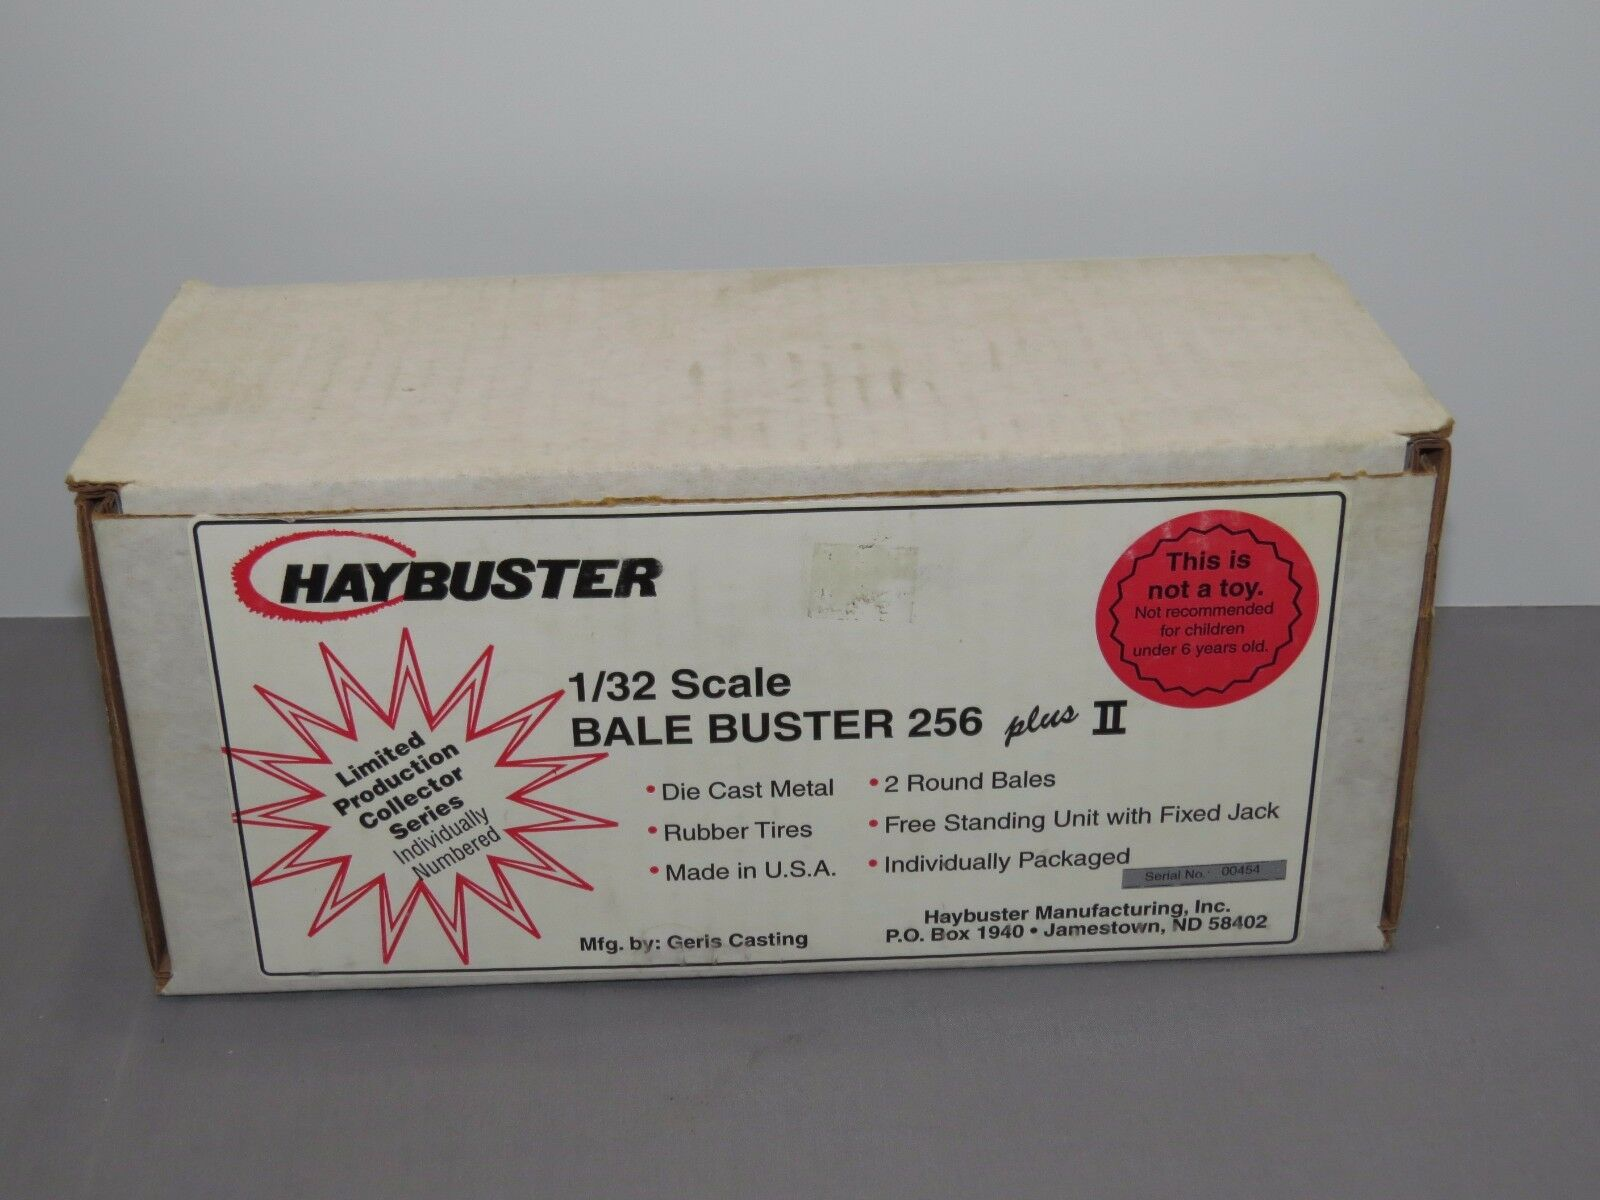 Hay Buster HAYBUSTER 1 32 scale Bale Buster 256 plus II Toy Geris Casting RARE